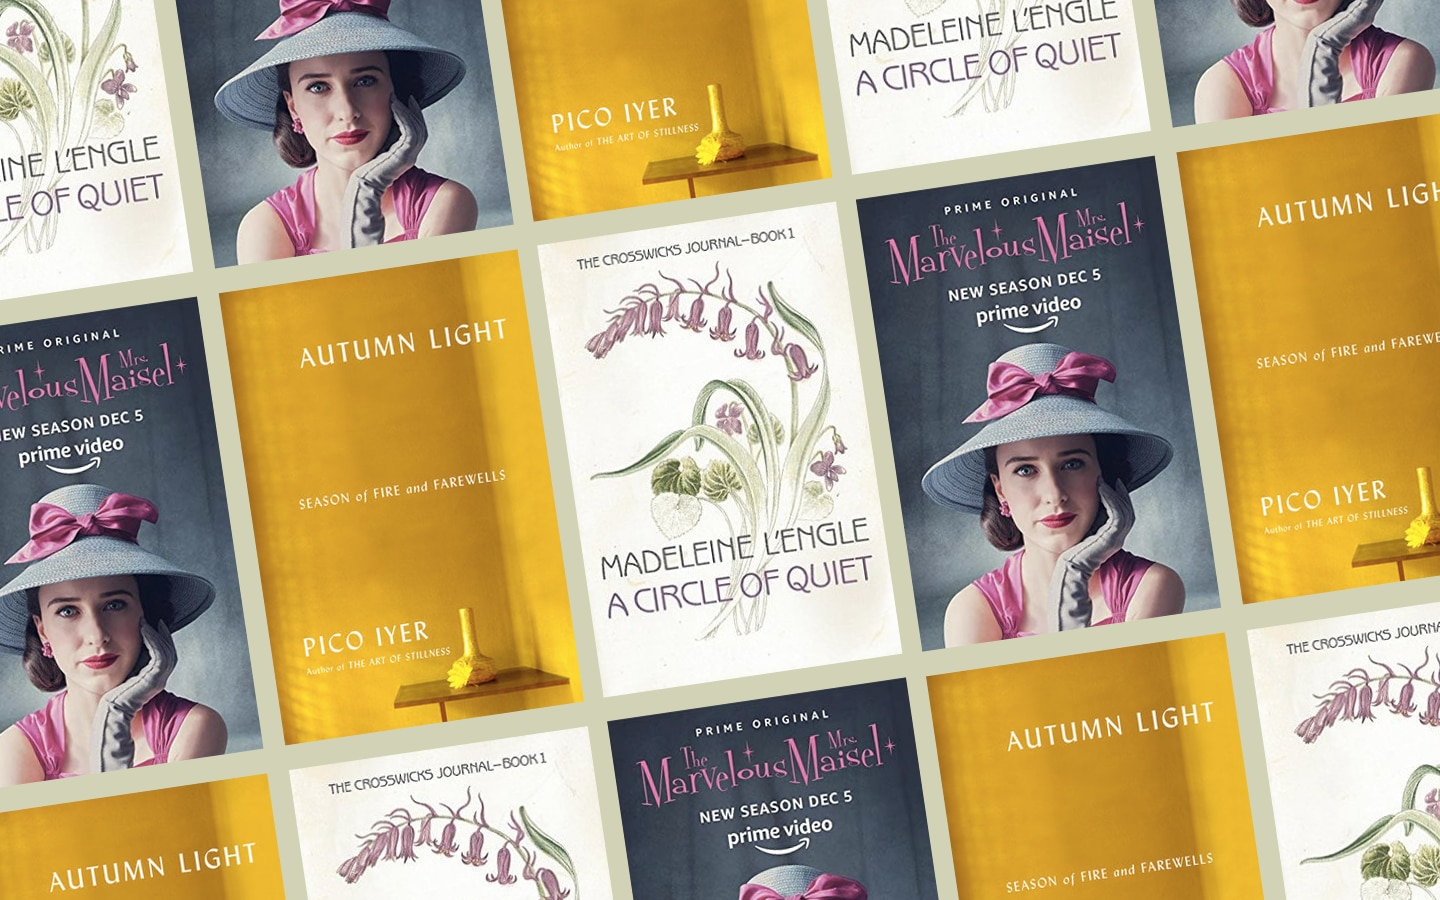 What Keeps Me Calm: A Myriad of Things, From Pico Iyer's 'Autumn Light' to 'The Marvelous Mrs. Maisel'